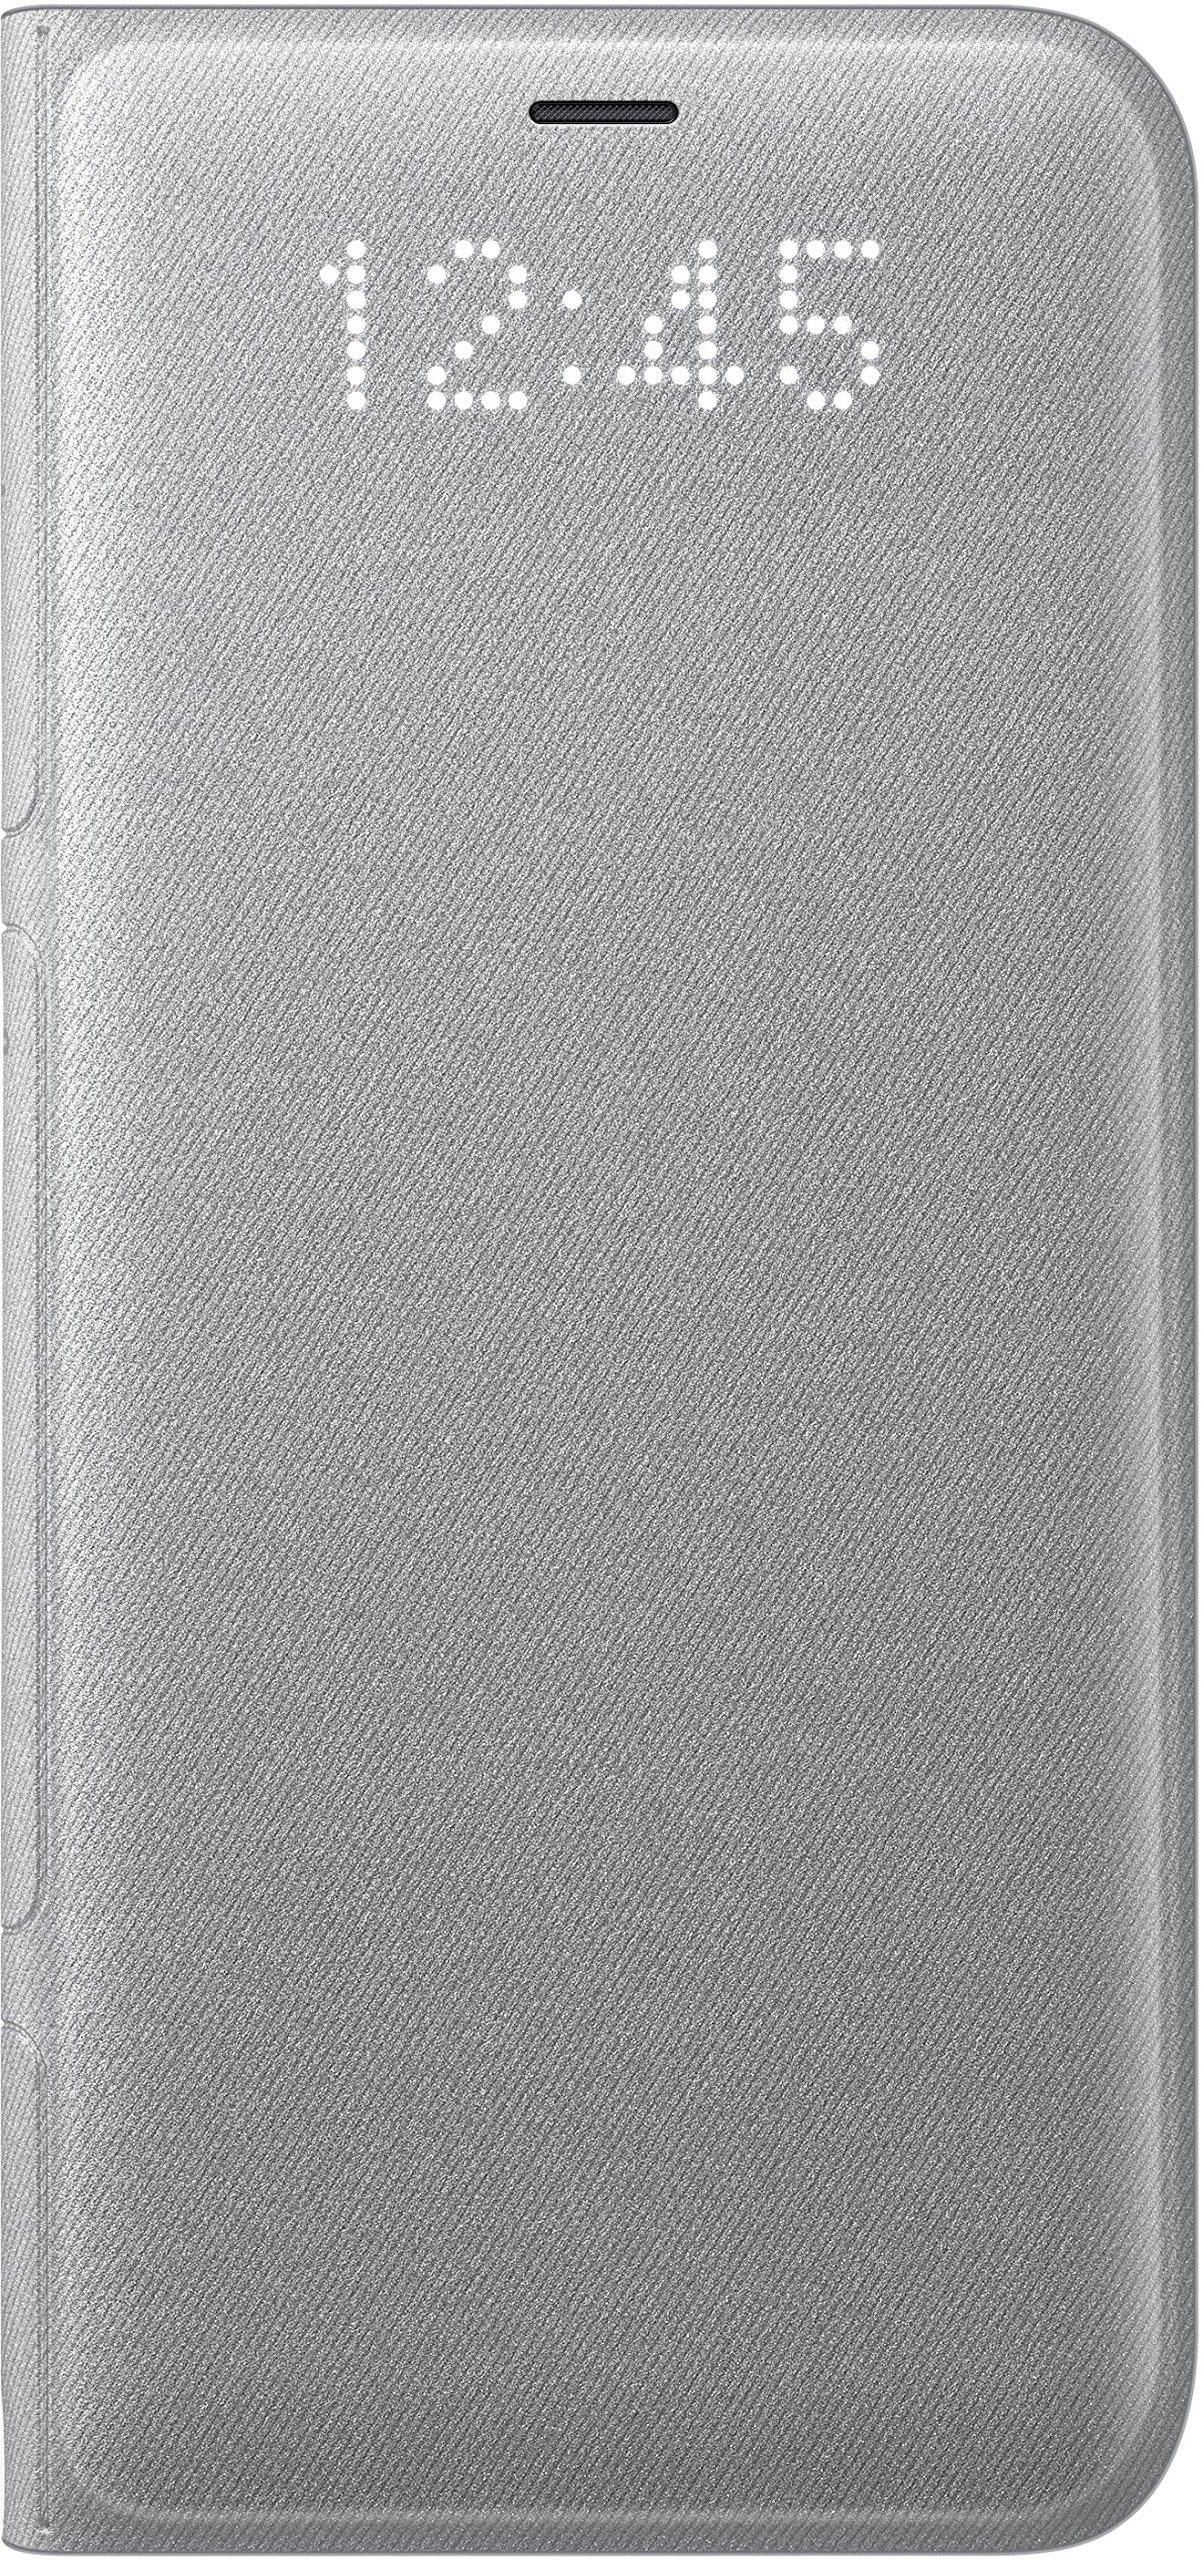 Genuine Samsung LED View Cover Flip Wallet Case for Samsung Galaxy S8 - Silver (EF-NG950PSEGWW)